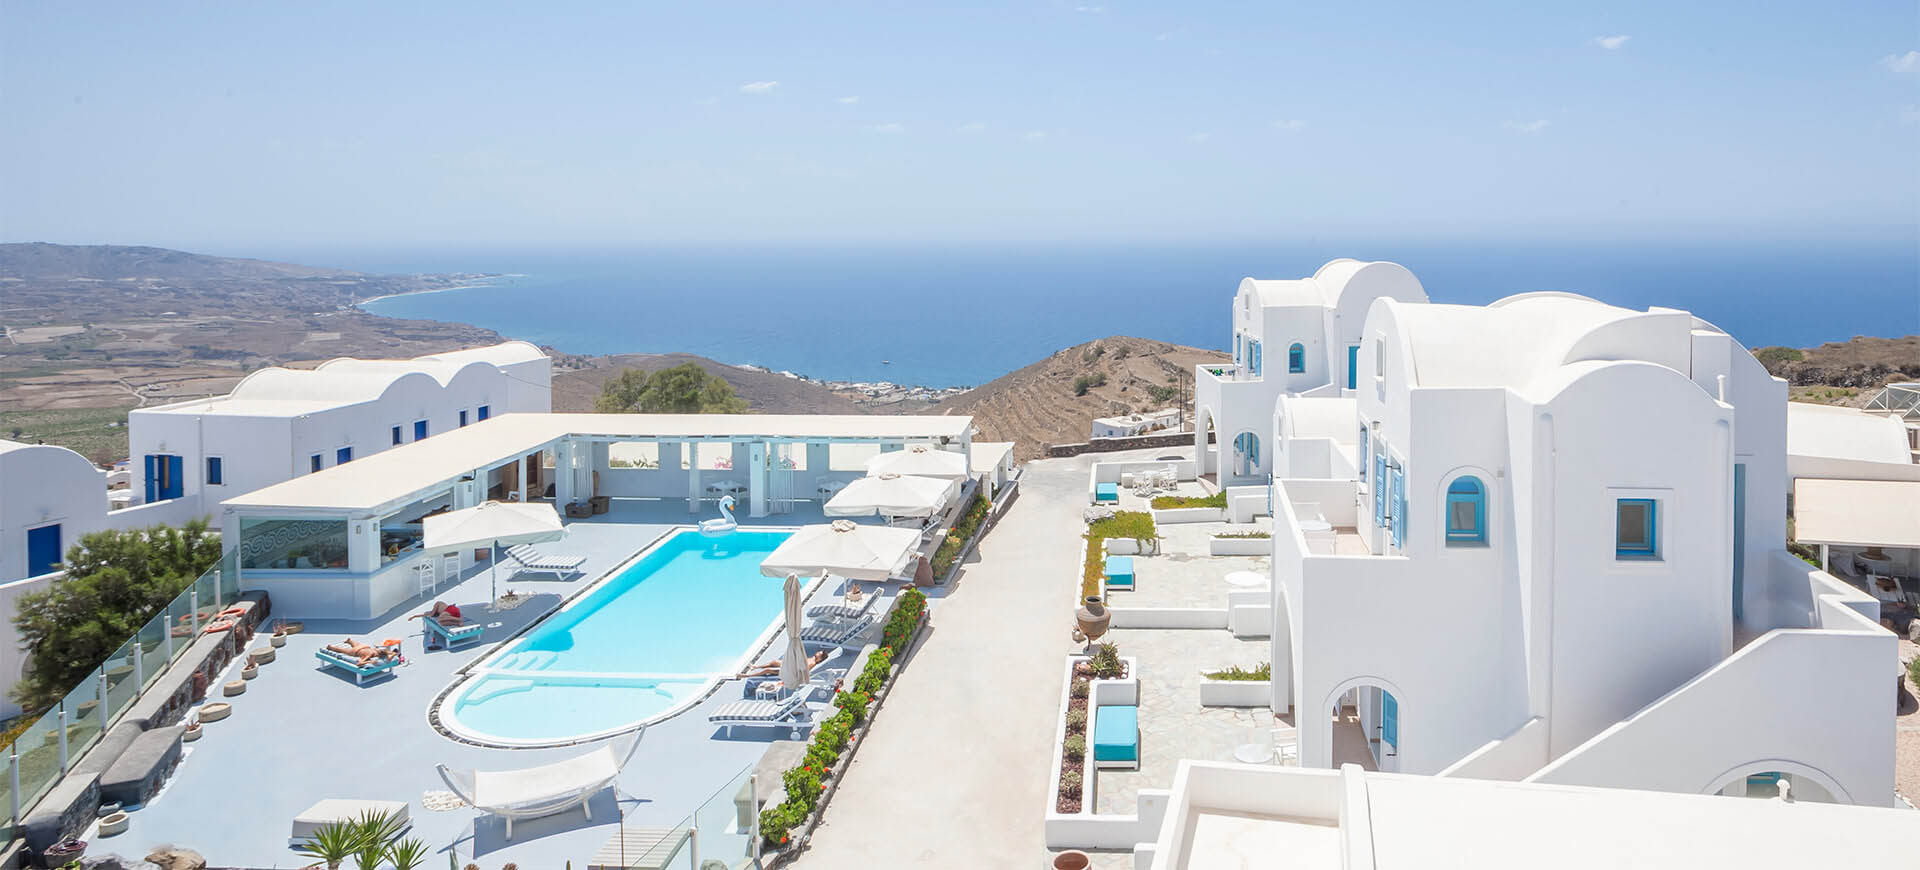 Kalestesia Suites - Panoramic view of Santorini